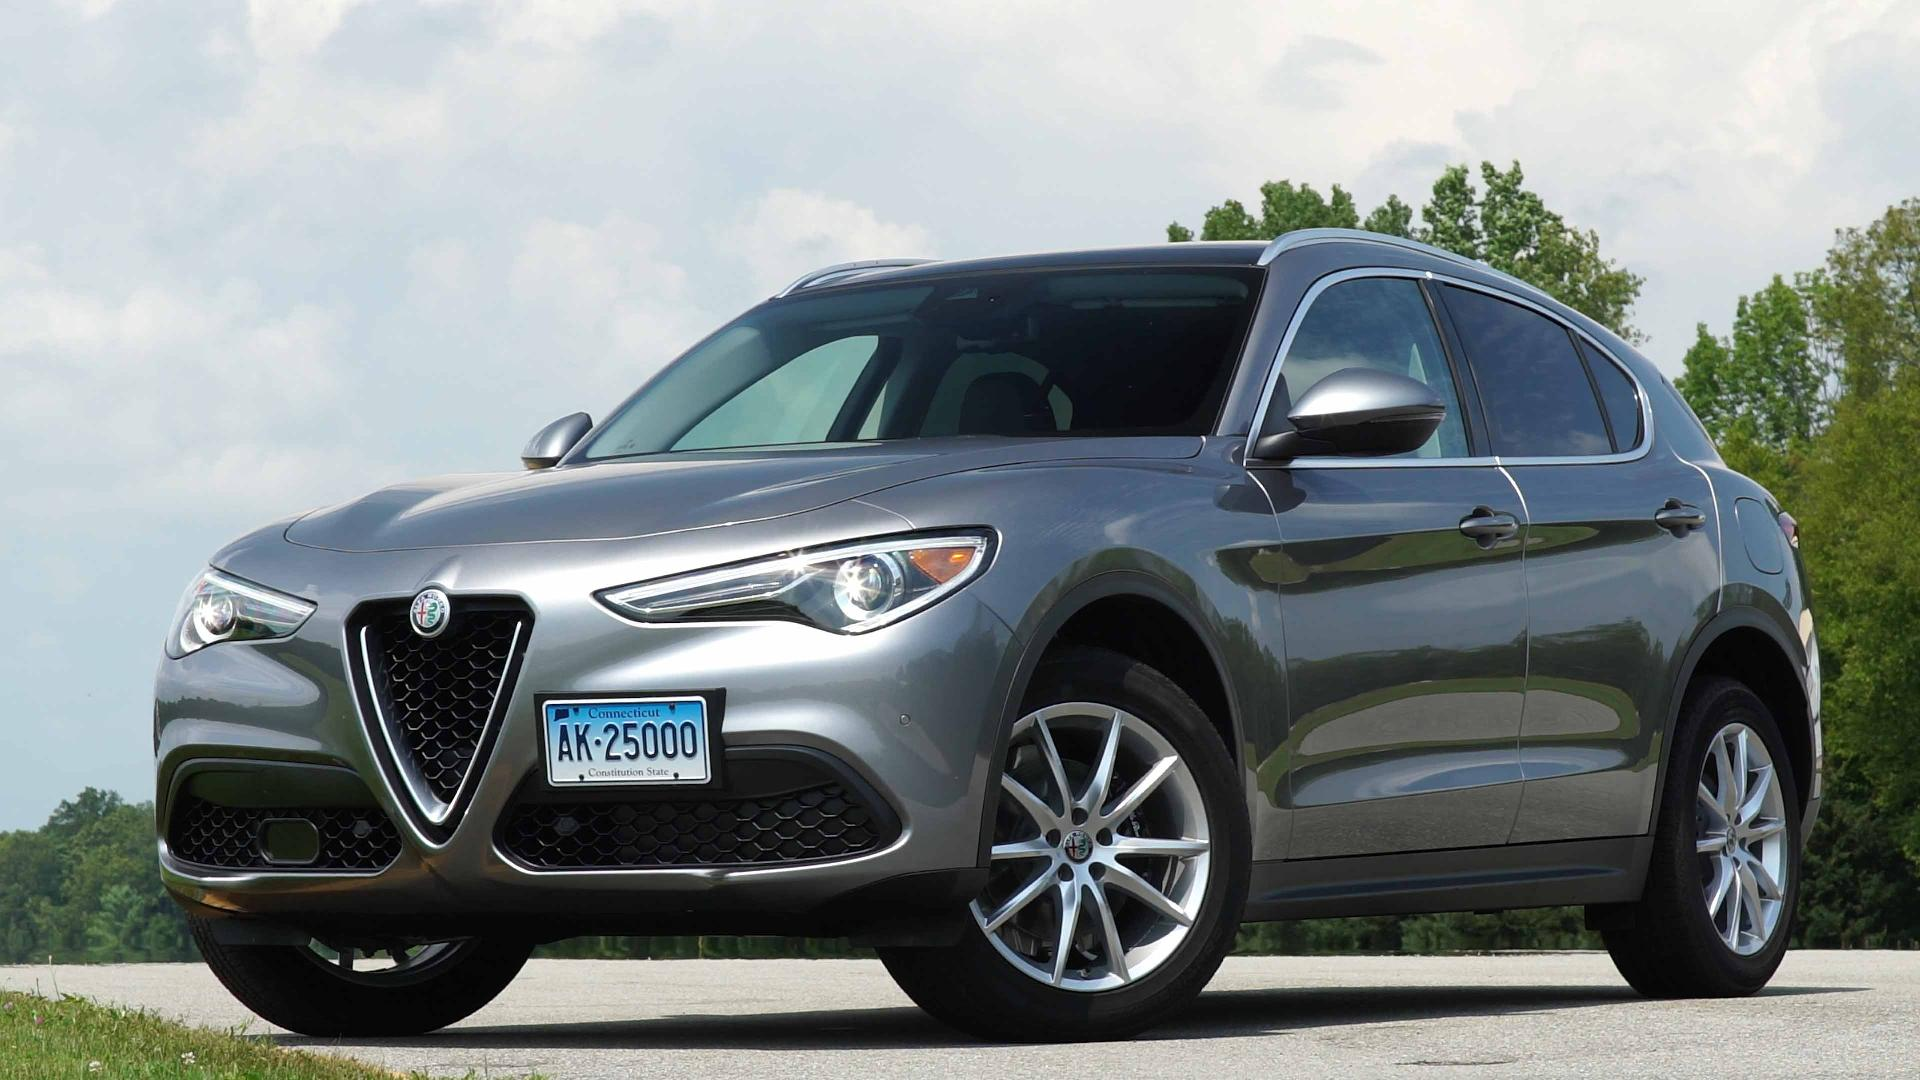 alfa romeo stelvio is agile but annoying - Suv Reviews